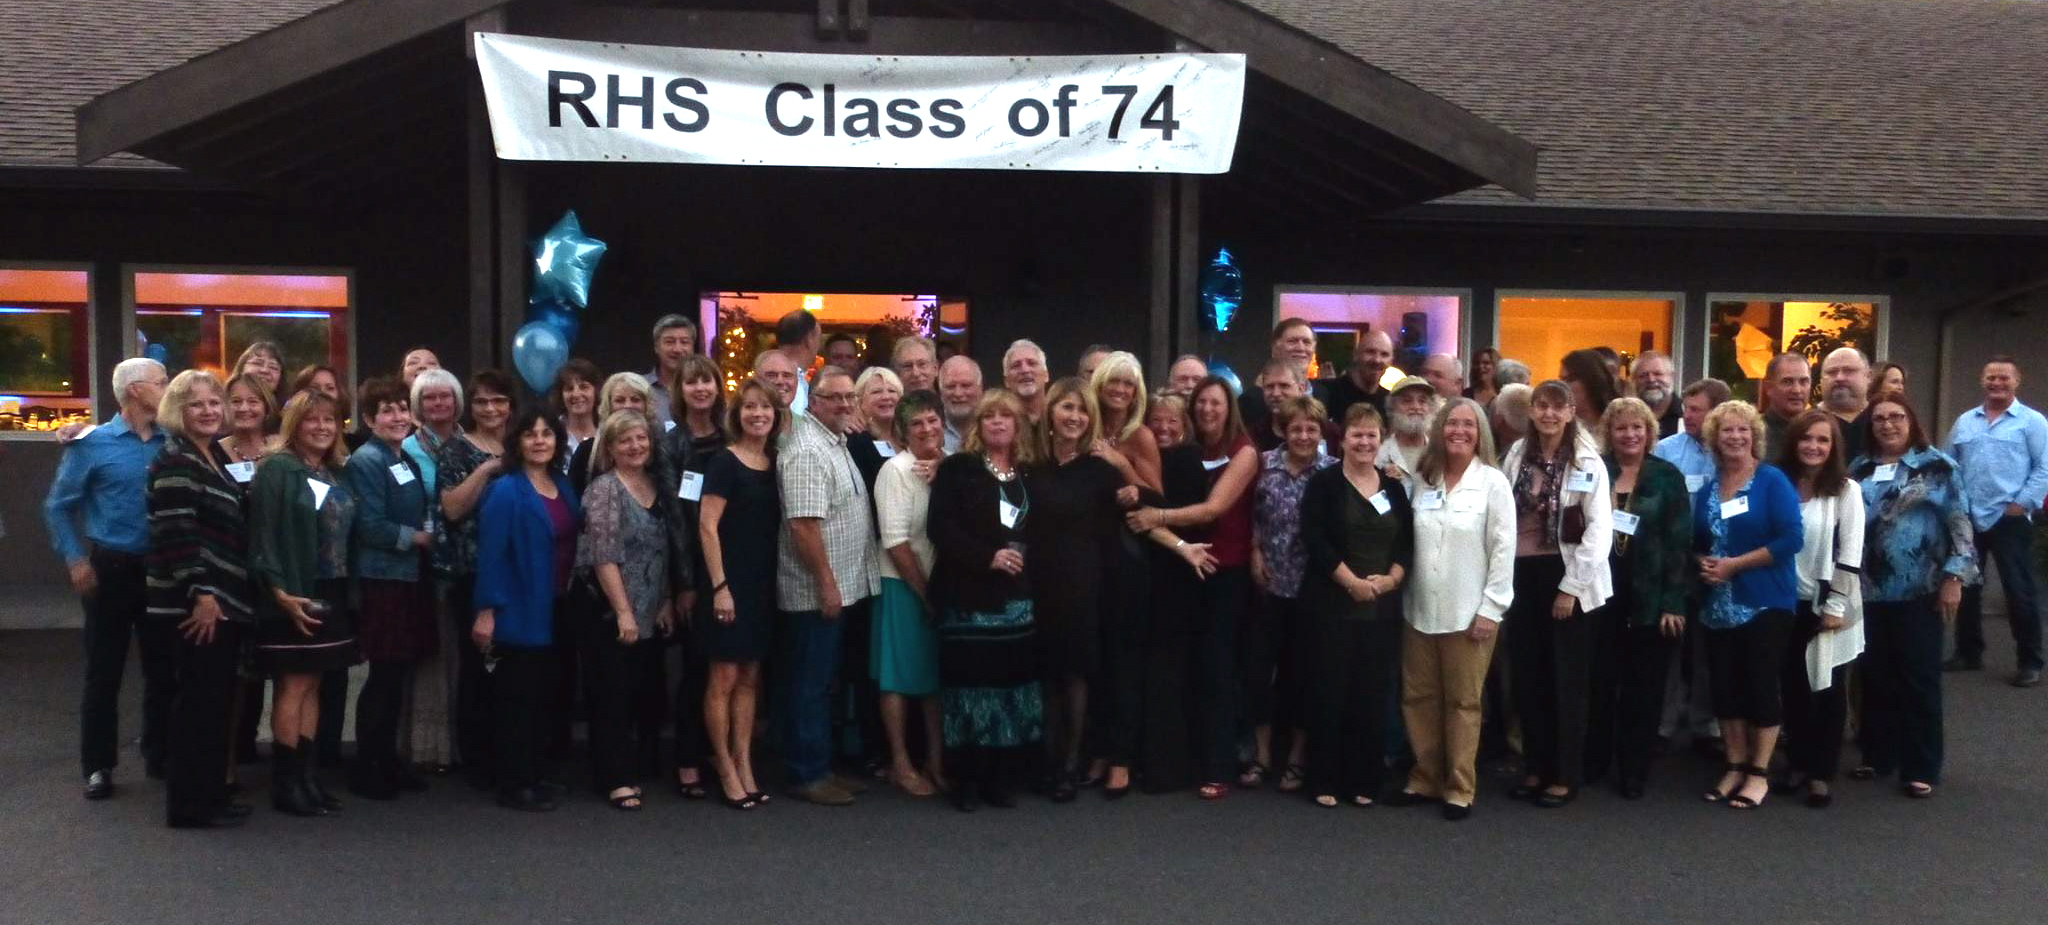 Rogers High School Class of 1974 Reunion Group Photo